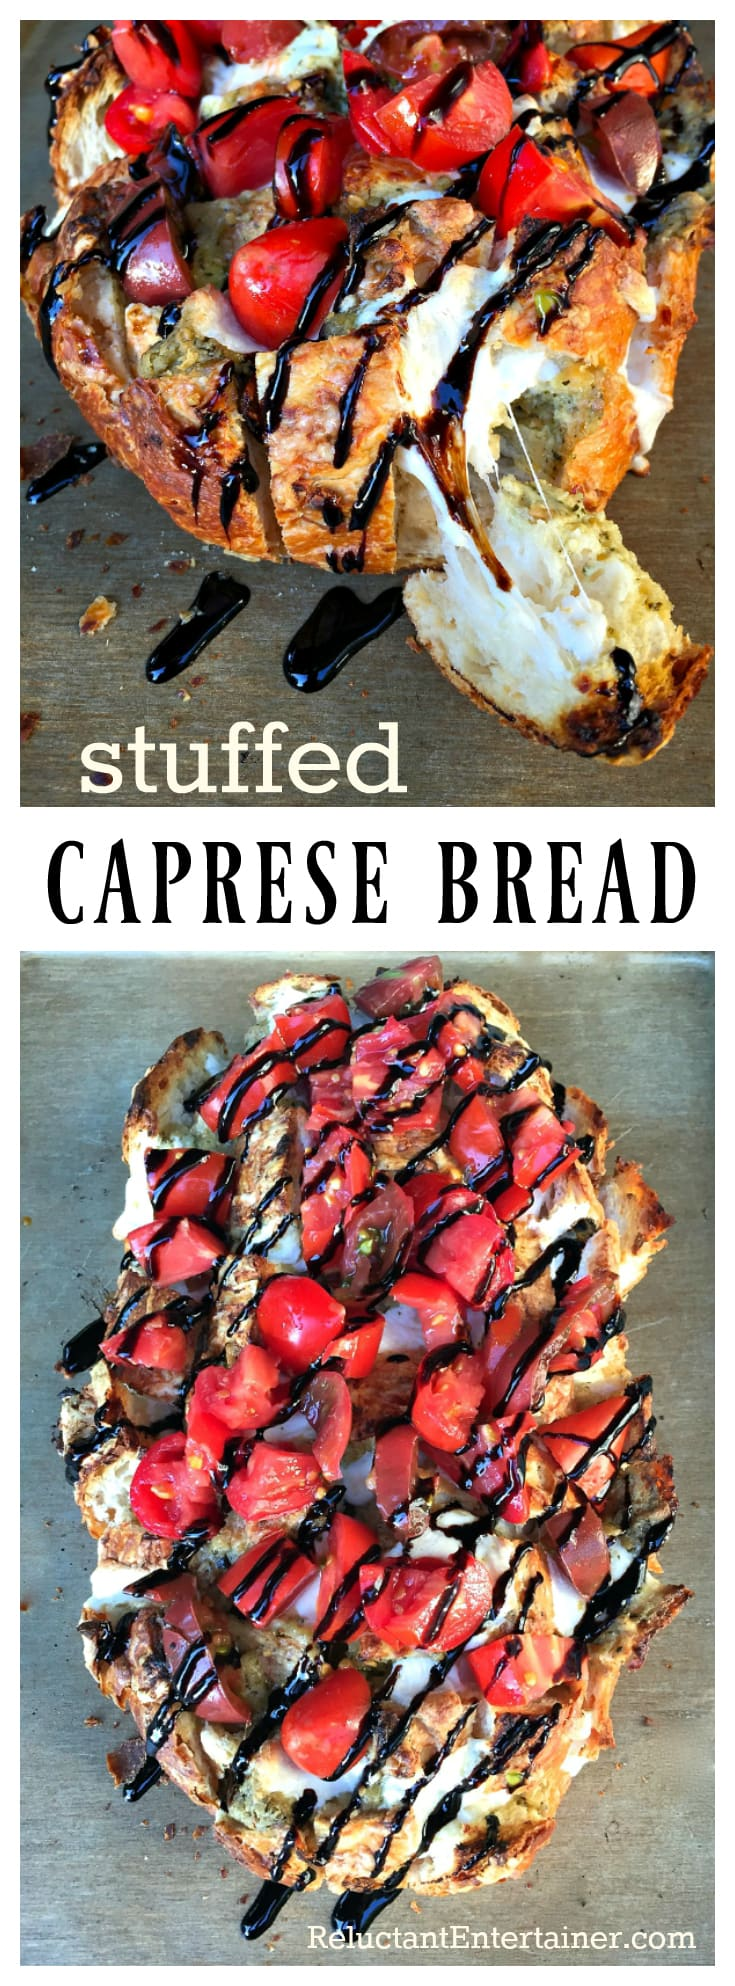 Stuffed Caprese Bread, a fun party food, appetizer, or tailgating appetizer with mozzarella cheese and fresh tomatoes.